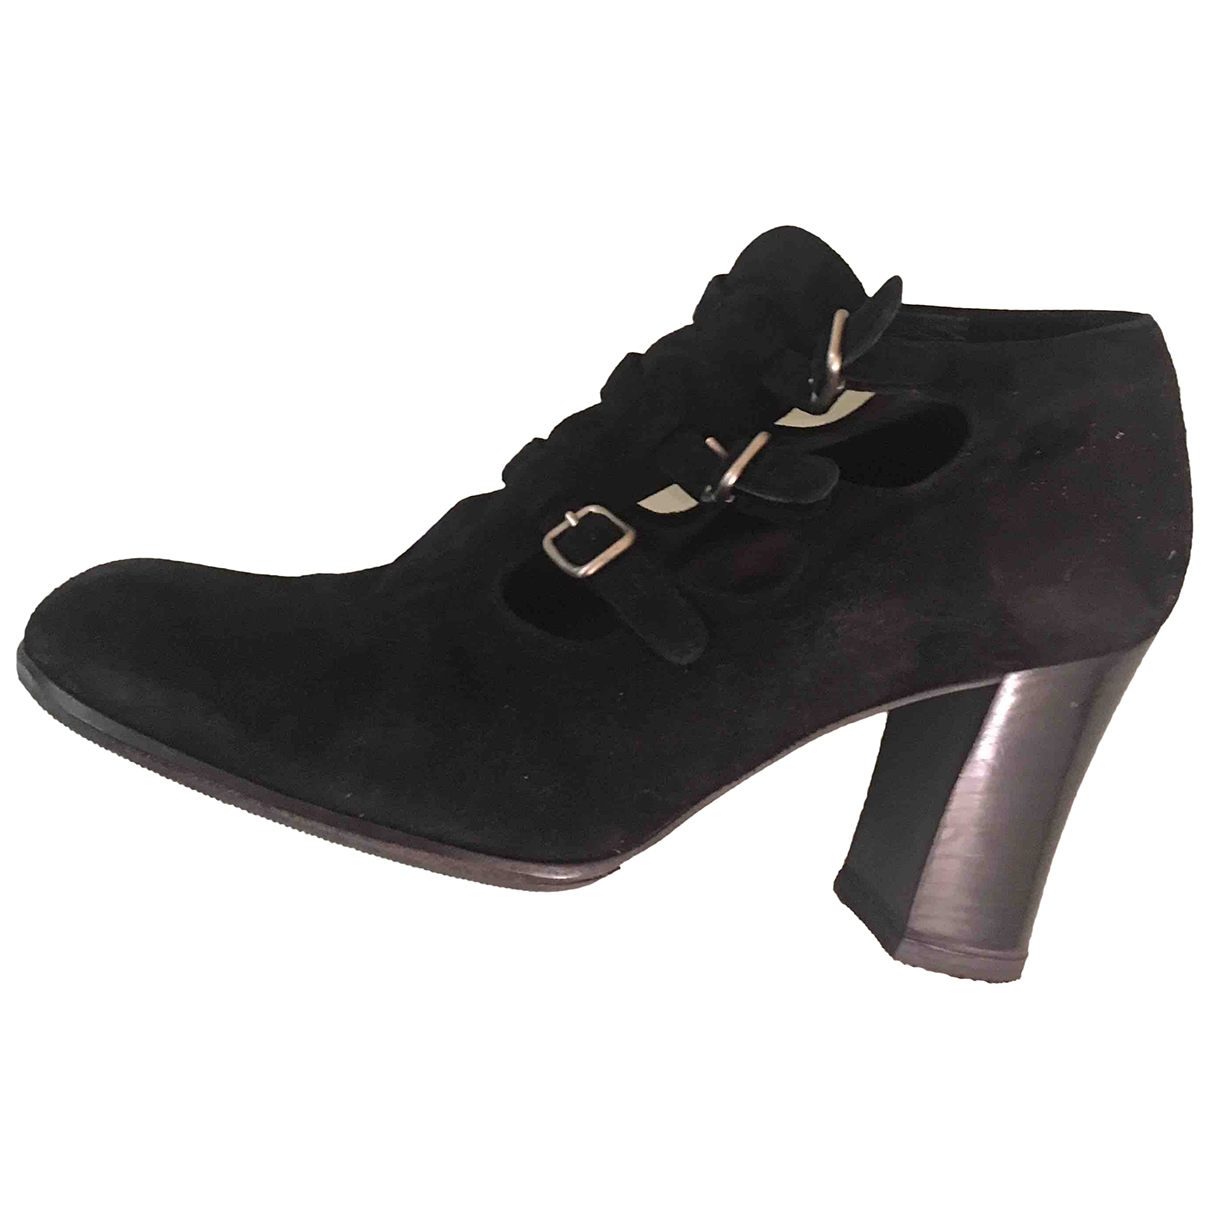 Prada \N Black Suede Ankle boots for Women 37 EU